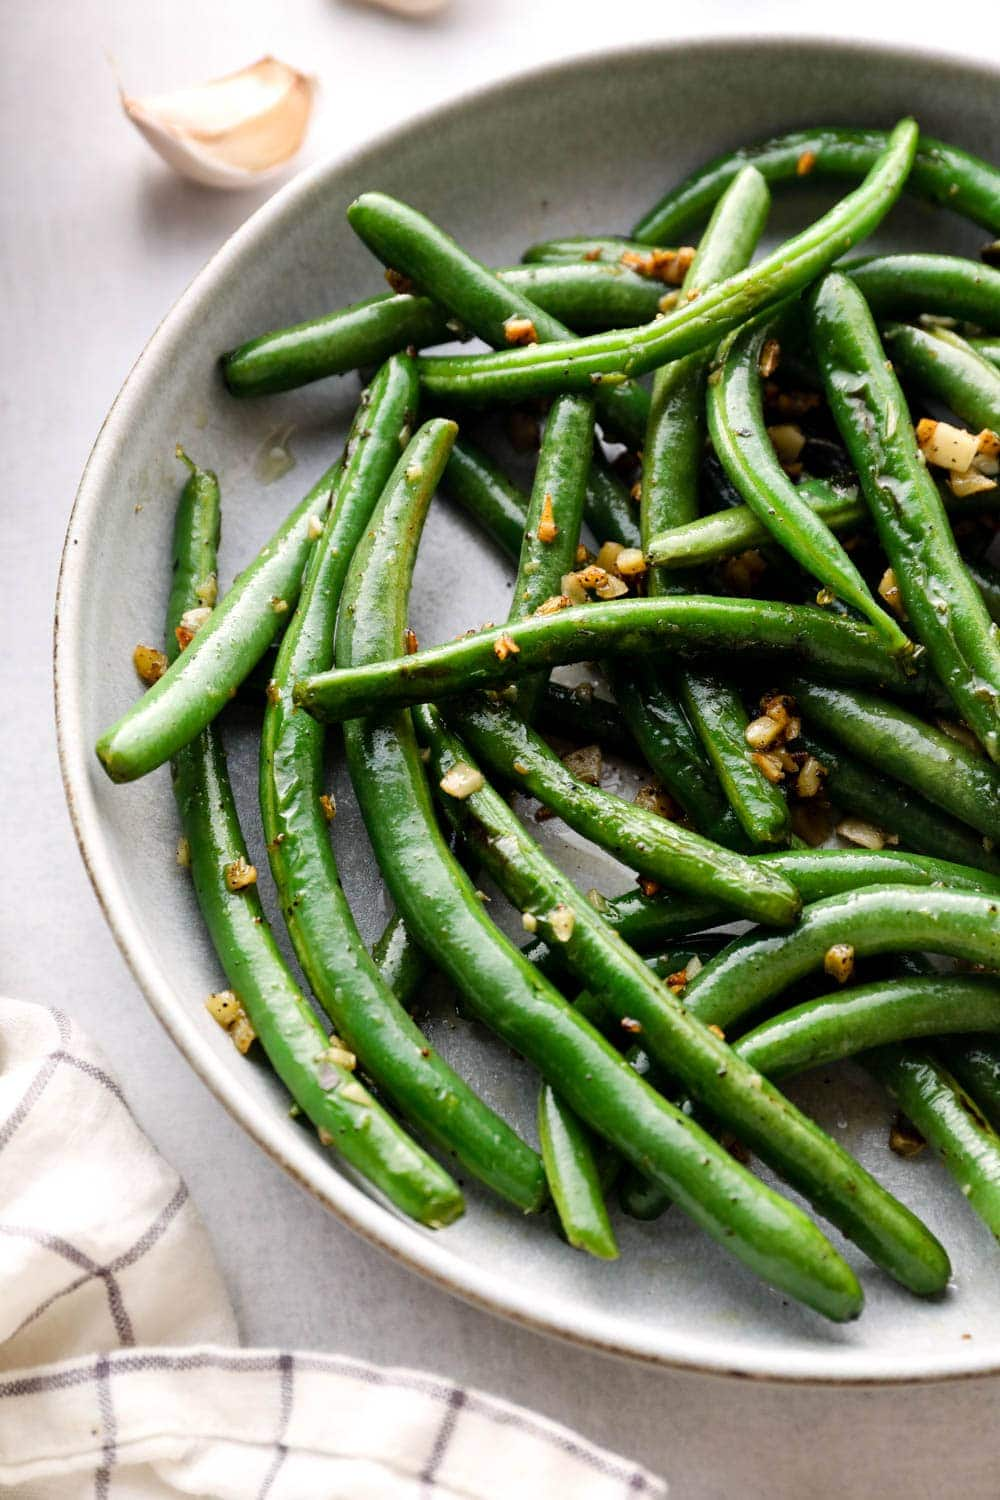 Sautéed green beans with crispy garlic.